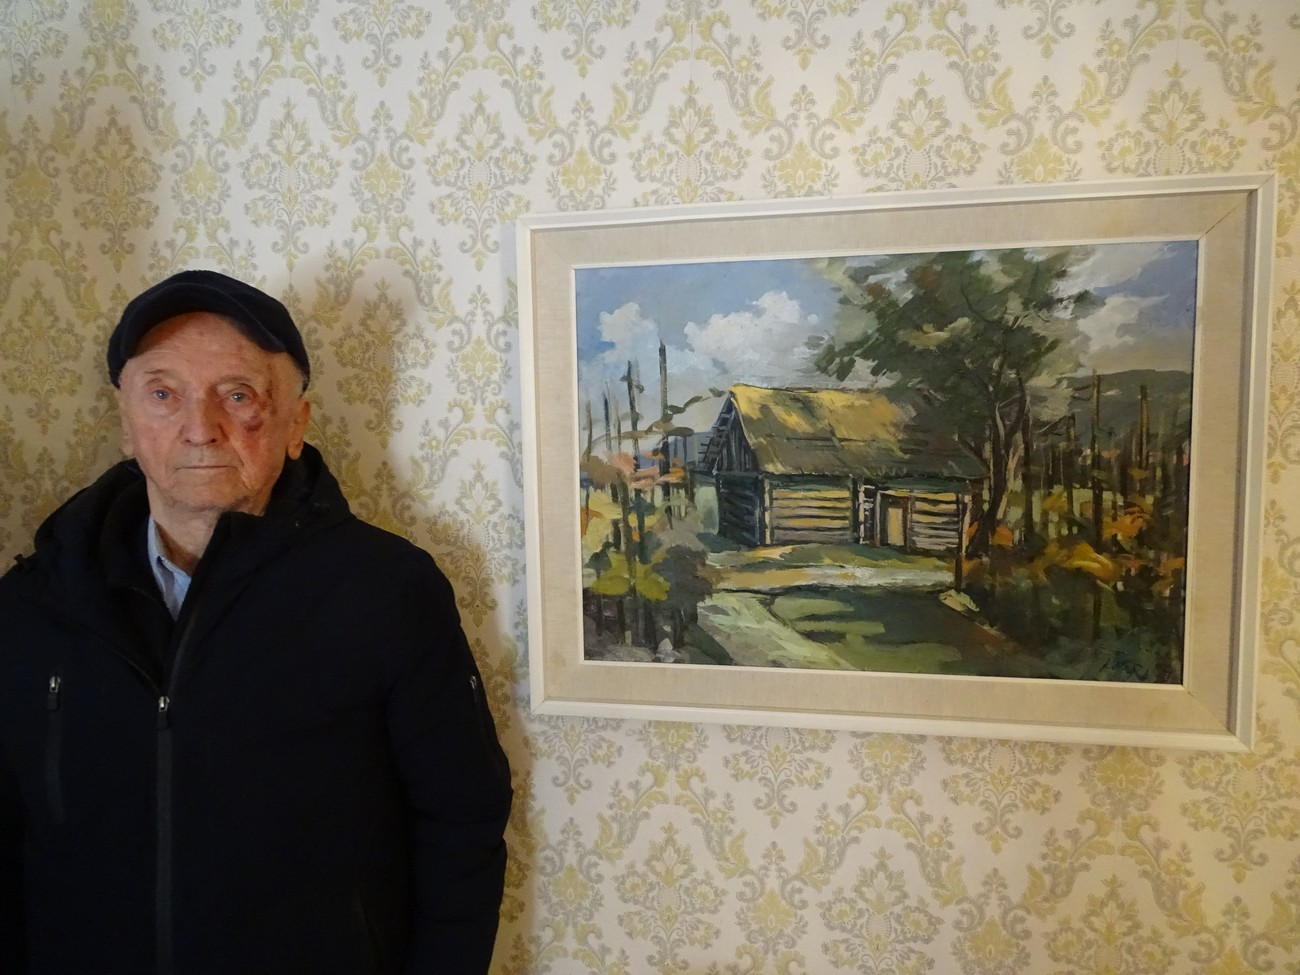 Jože Pirkovič (born 1934) next to a painting of his parents' vineyard cottage in Vajndol (Gorenje Vrhpolje). Italian soldiers used it for food storage. There was a bunker about 150m from the cottage; it was partly dug into the ground, was made of wood, and covered with soil around the rim. They had to cut down vineyards along the route of the fortified border. Jože's father made an arrangement with the Italian commander, so he did not have to cut down the vineyard; instead, he removed the stakes and fastened the vines to the ground. Author: Blaž Štangelj.